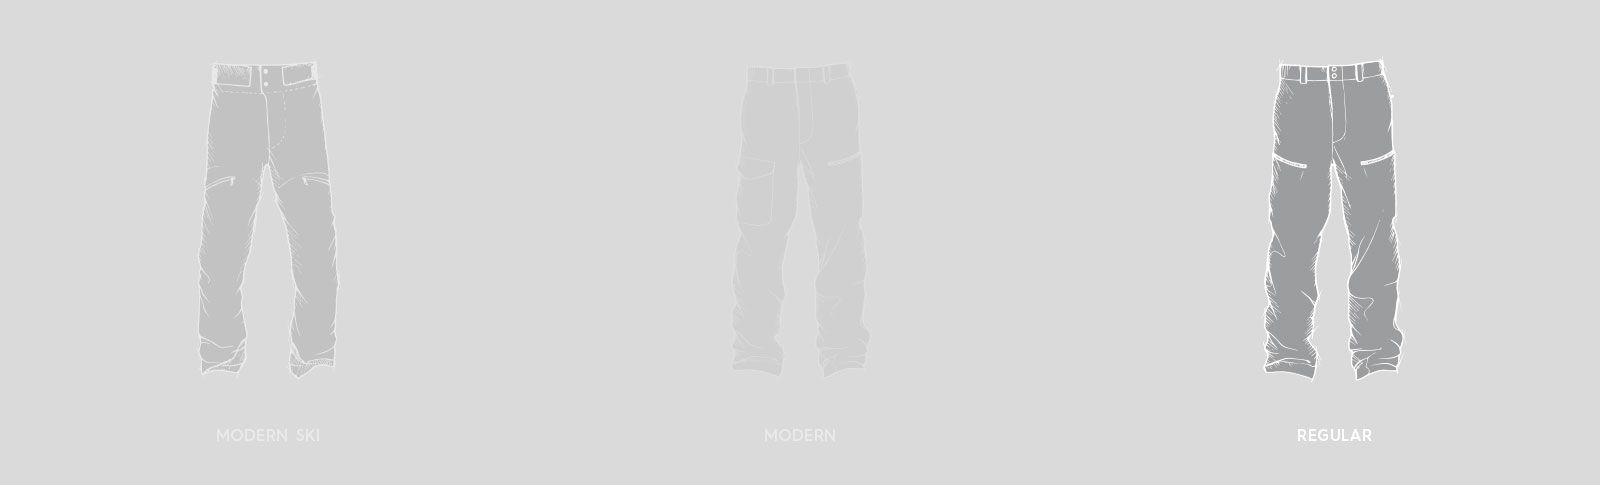 348a23330e42 Porter - Snow Pants for Boys 8-16 3613373691101